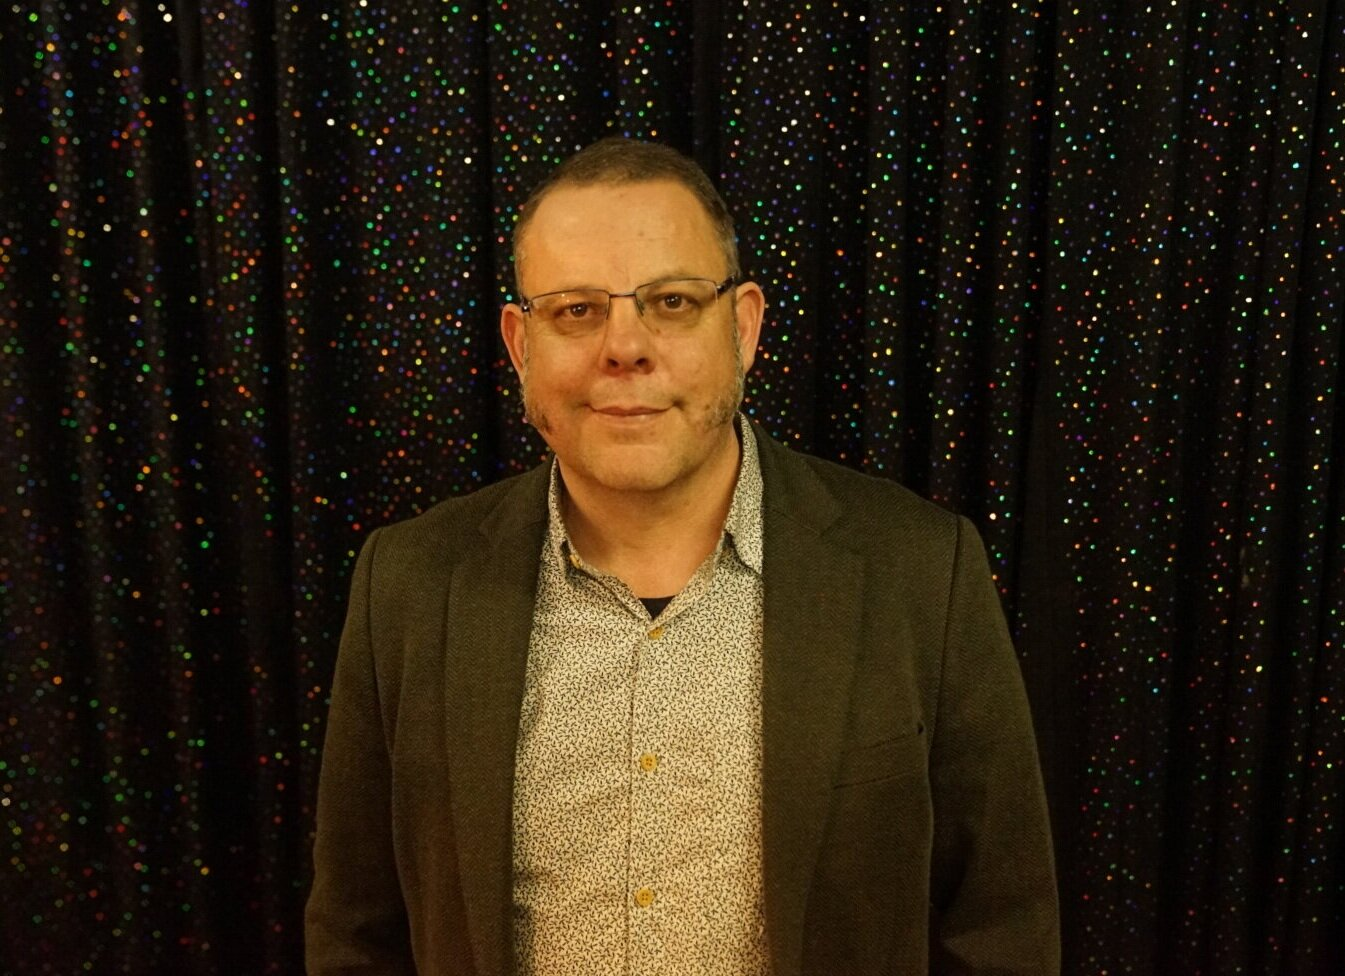 Andrew Harbison - Music and Entertainment Programmer, New Year's Eve